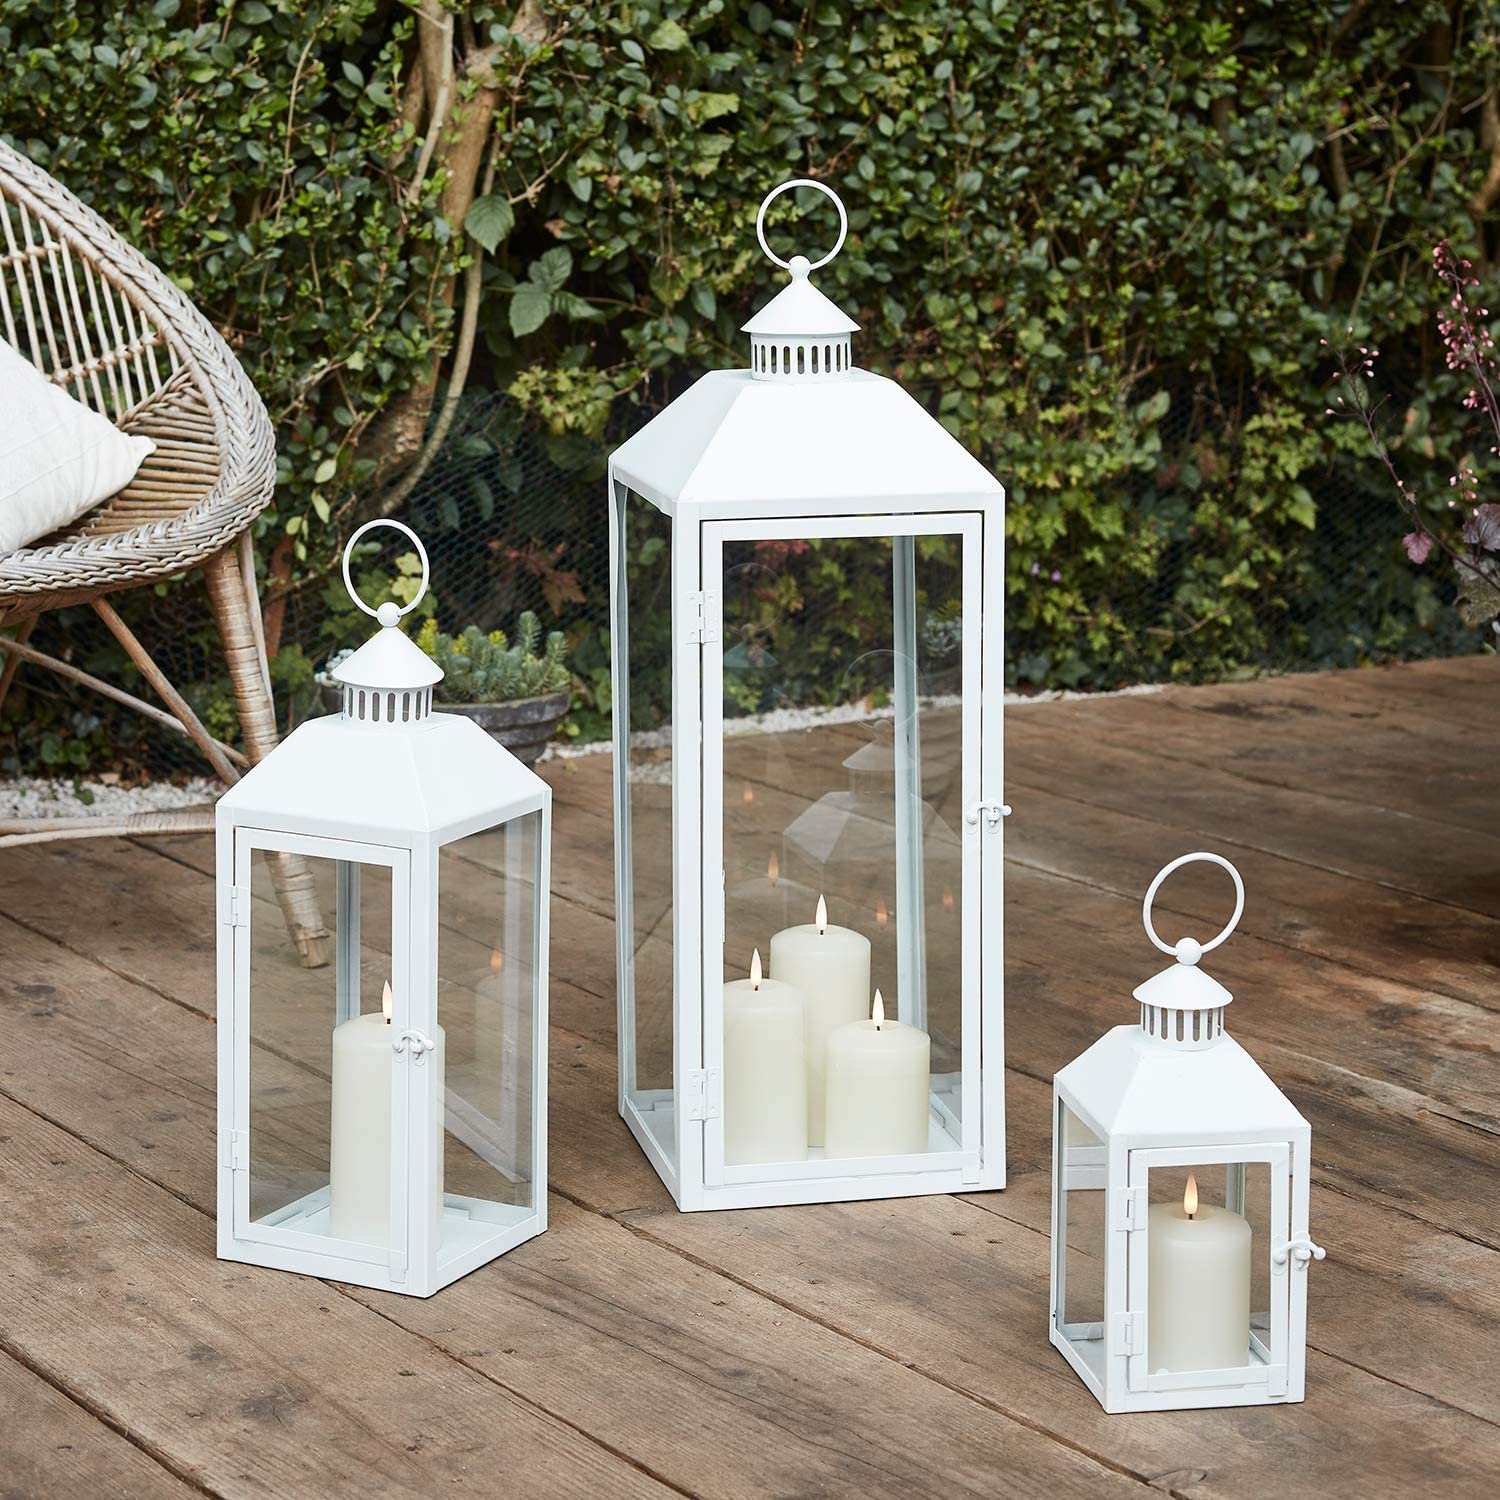 Lights4fun Set Of 3 Outdoor Large Floor Lanterns White Metal Truglow Led Candles Timer Amazon Co Uk Lighting